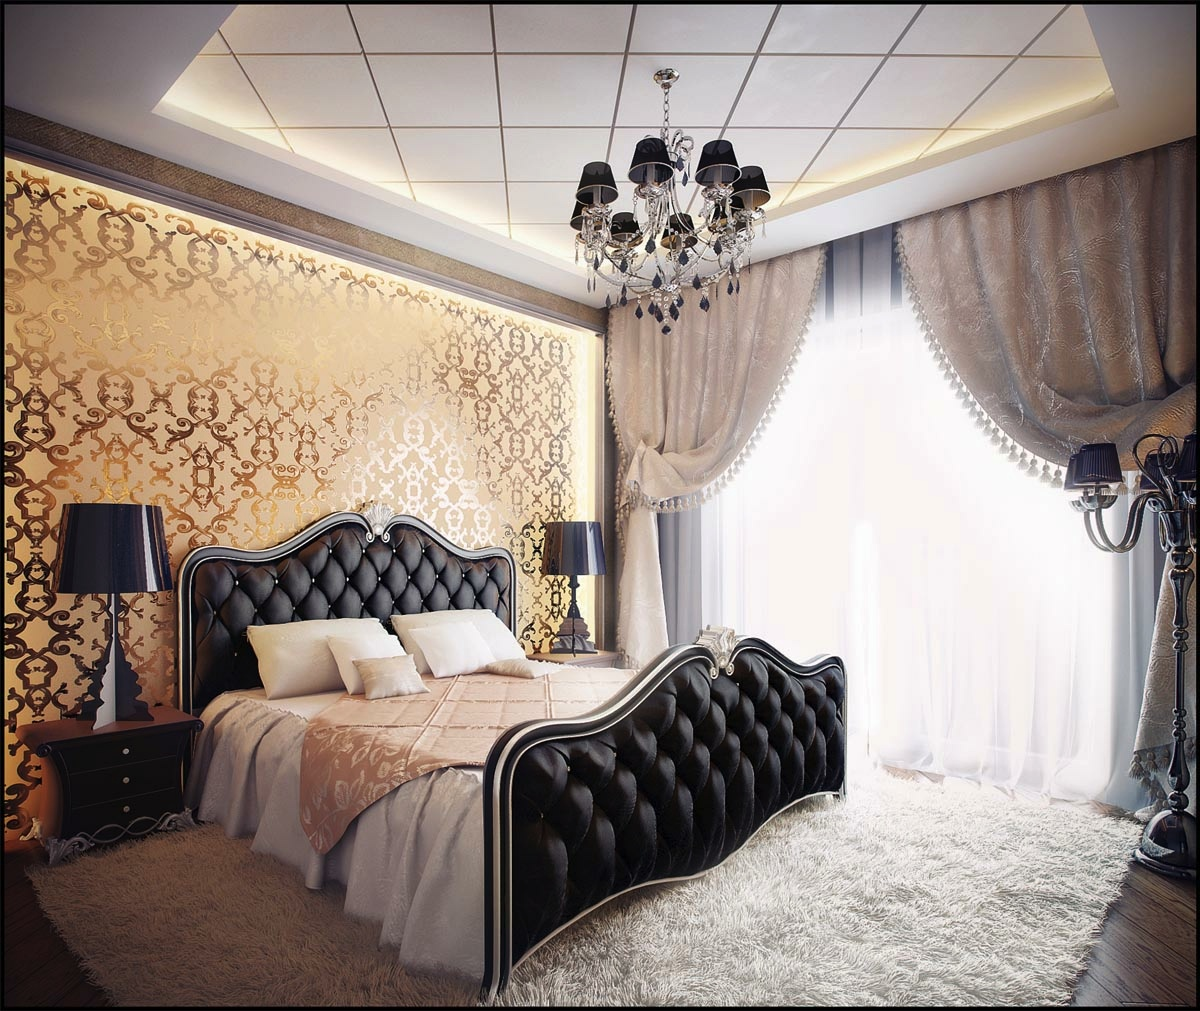 bedrooms with traditional elegance. Black Bedroom Furniture Sets. Home Design Ideas